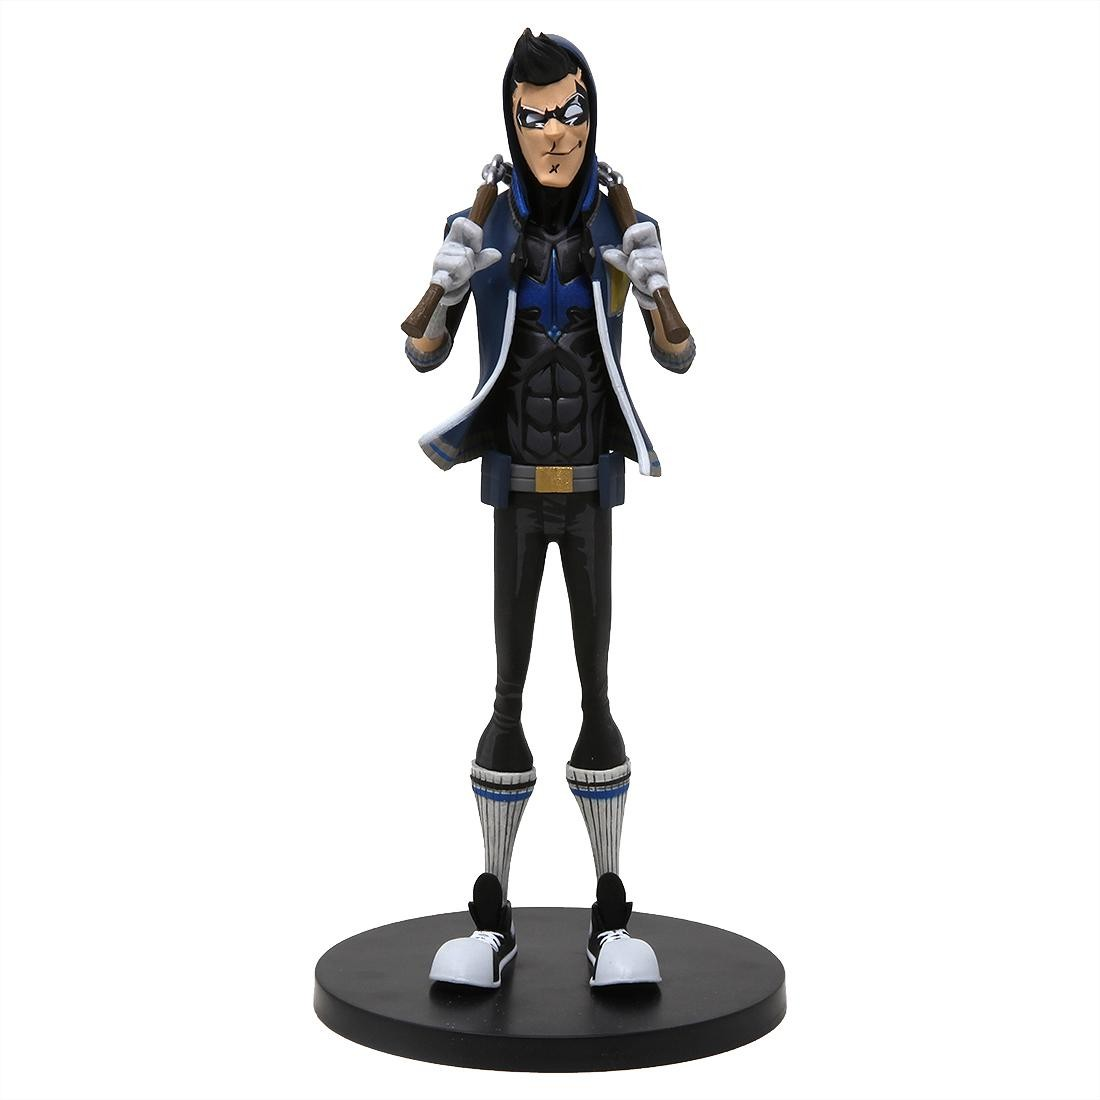 DC Artists Alley DC Comics Nightwing Figure by Nooligan